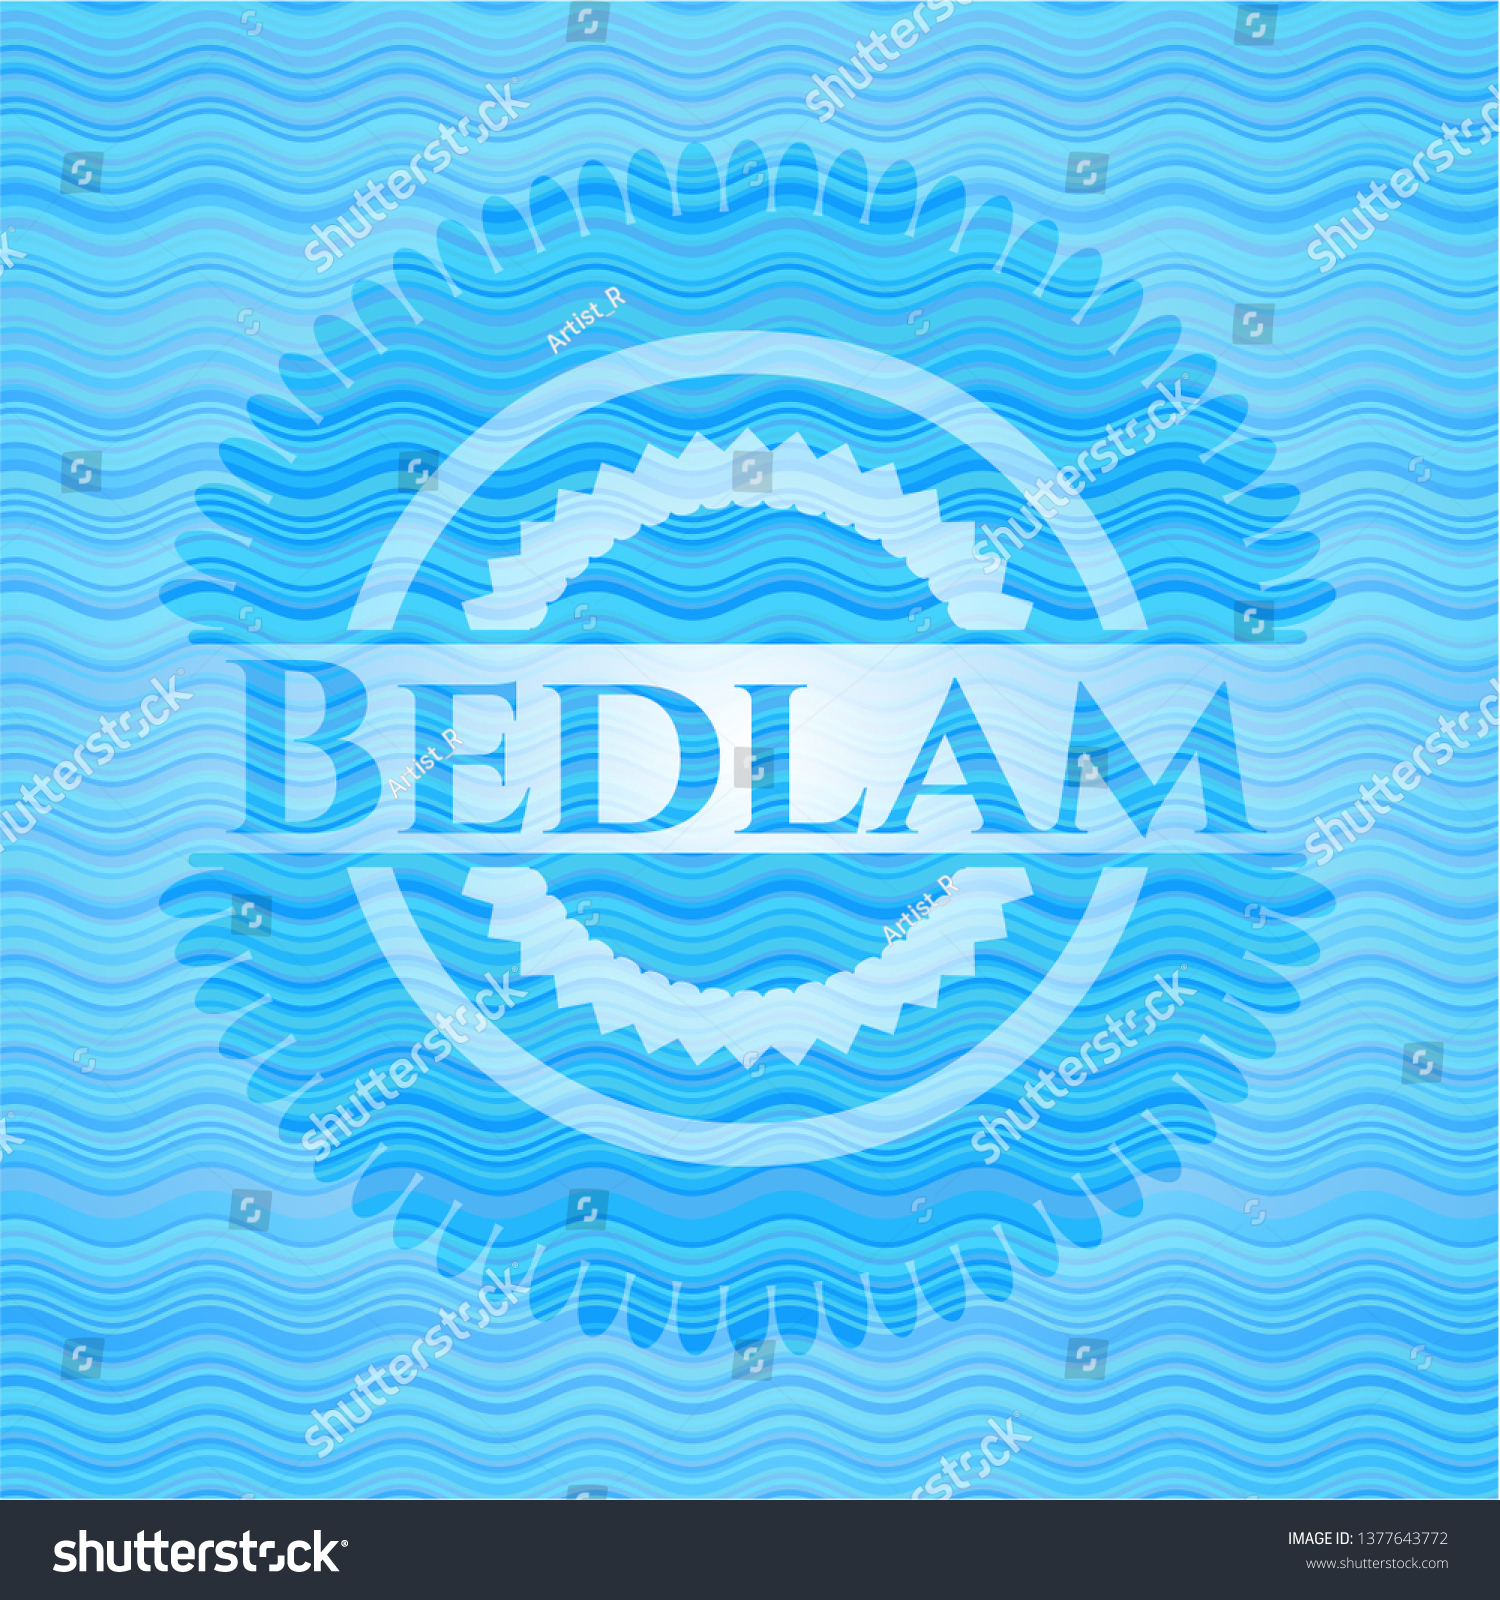 Bedlam Water Concept Emblem Background Royalty  Stock Image 1500x1600